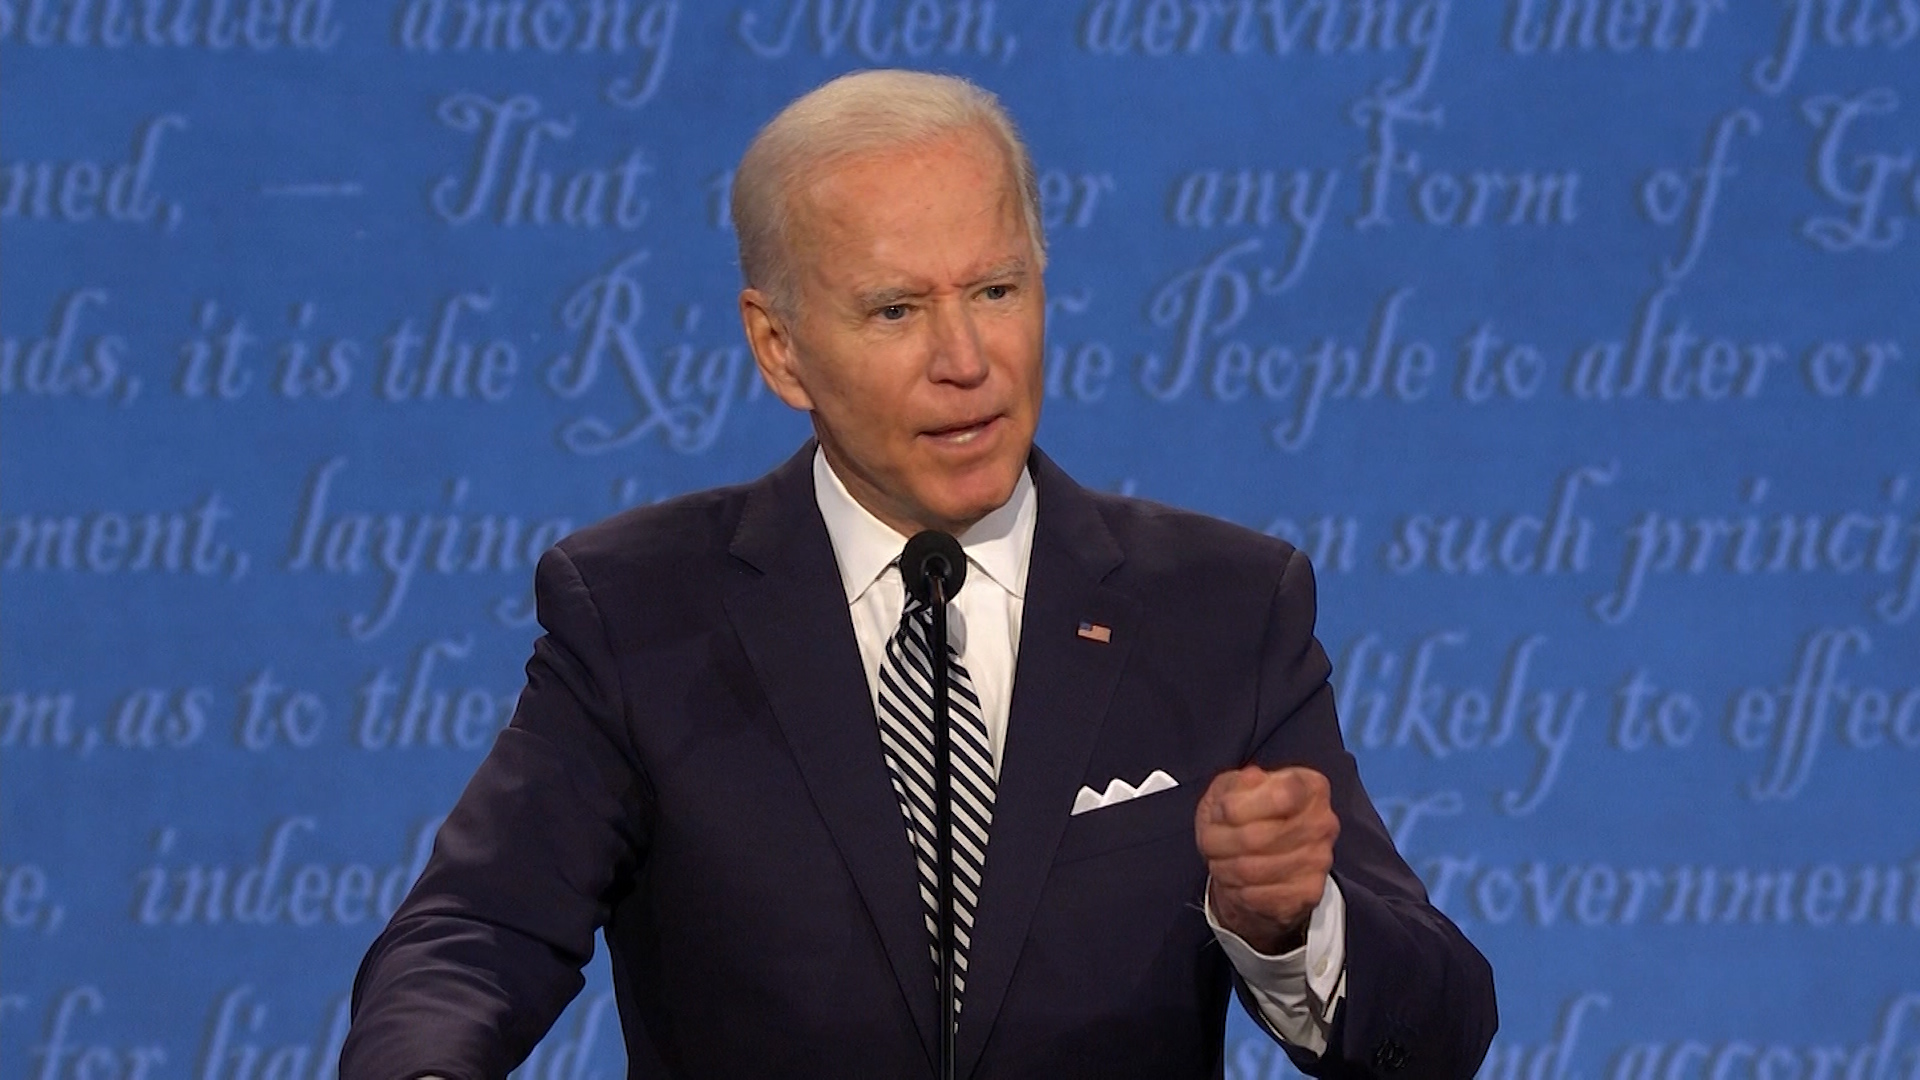 Biden calls on Senate to pursue impeachment along with the nation's 'other urgent business'